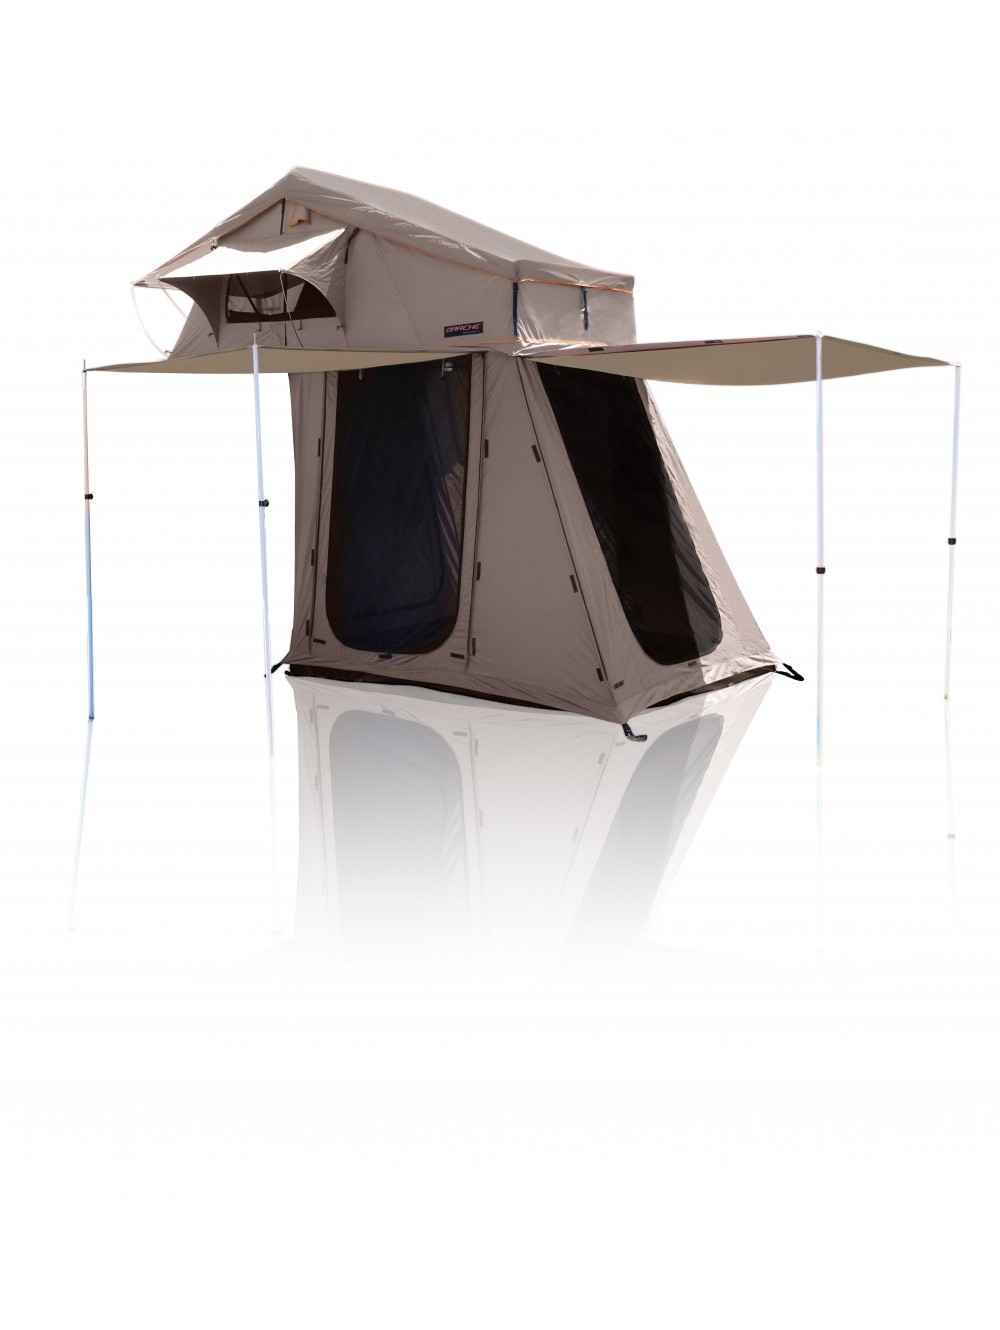 4Wd Awning Tent t050801606 - panorama 2 roof top tent with annex - rooftop